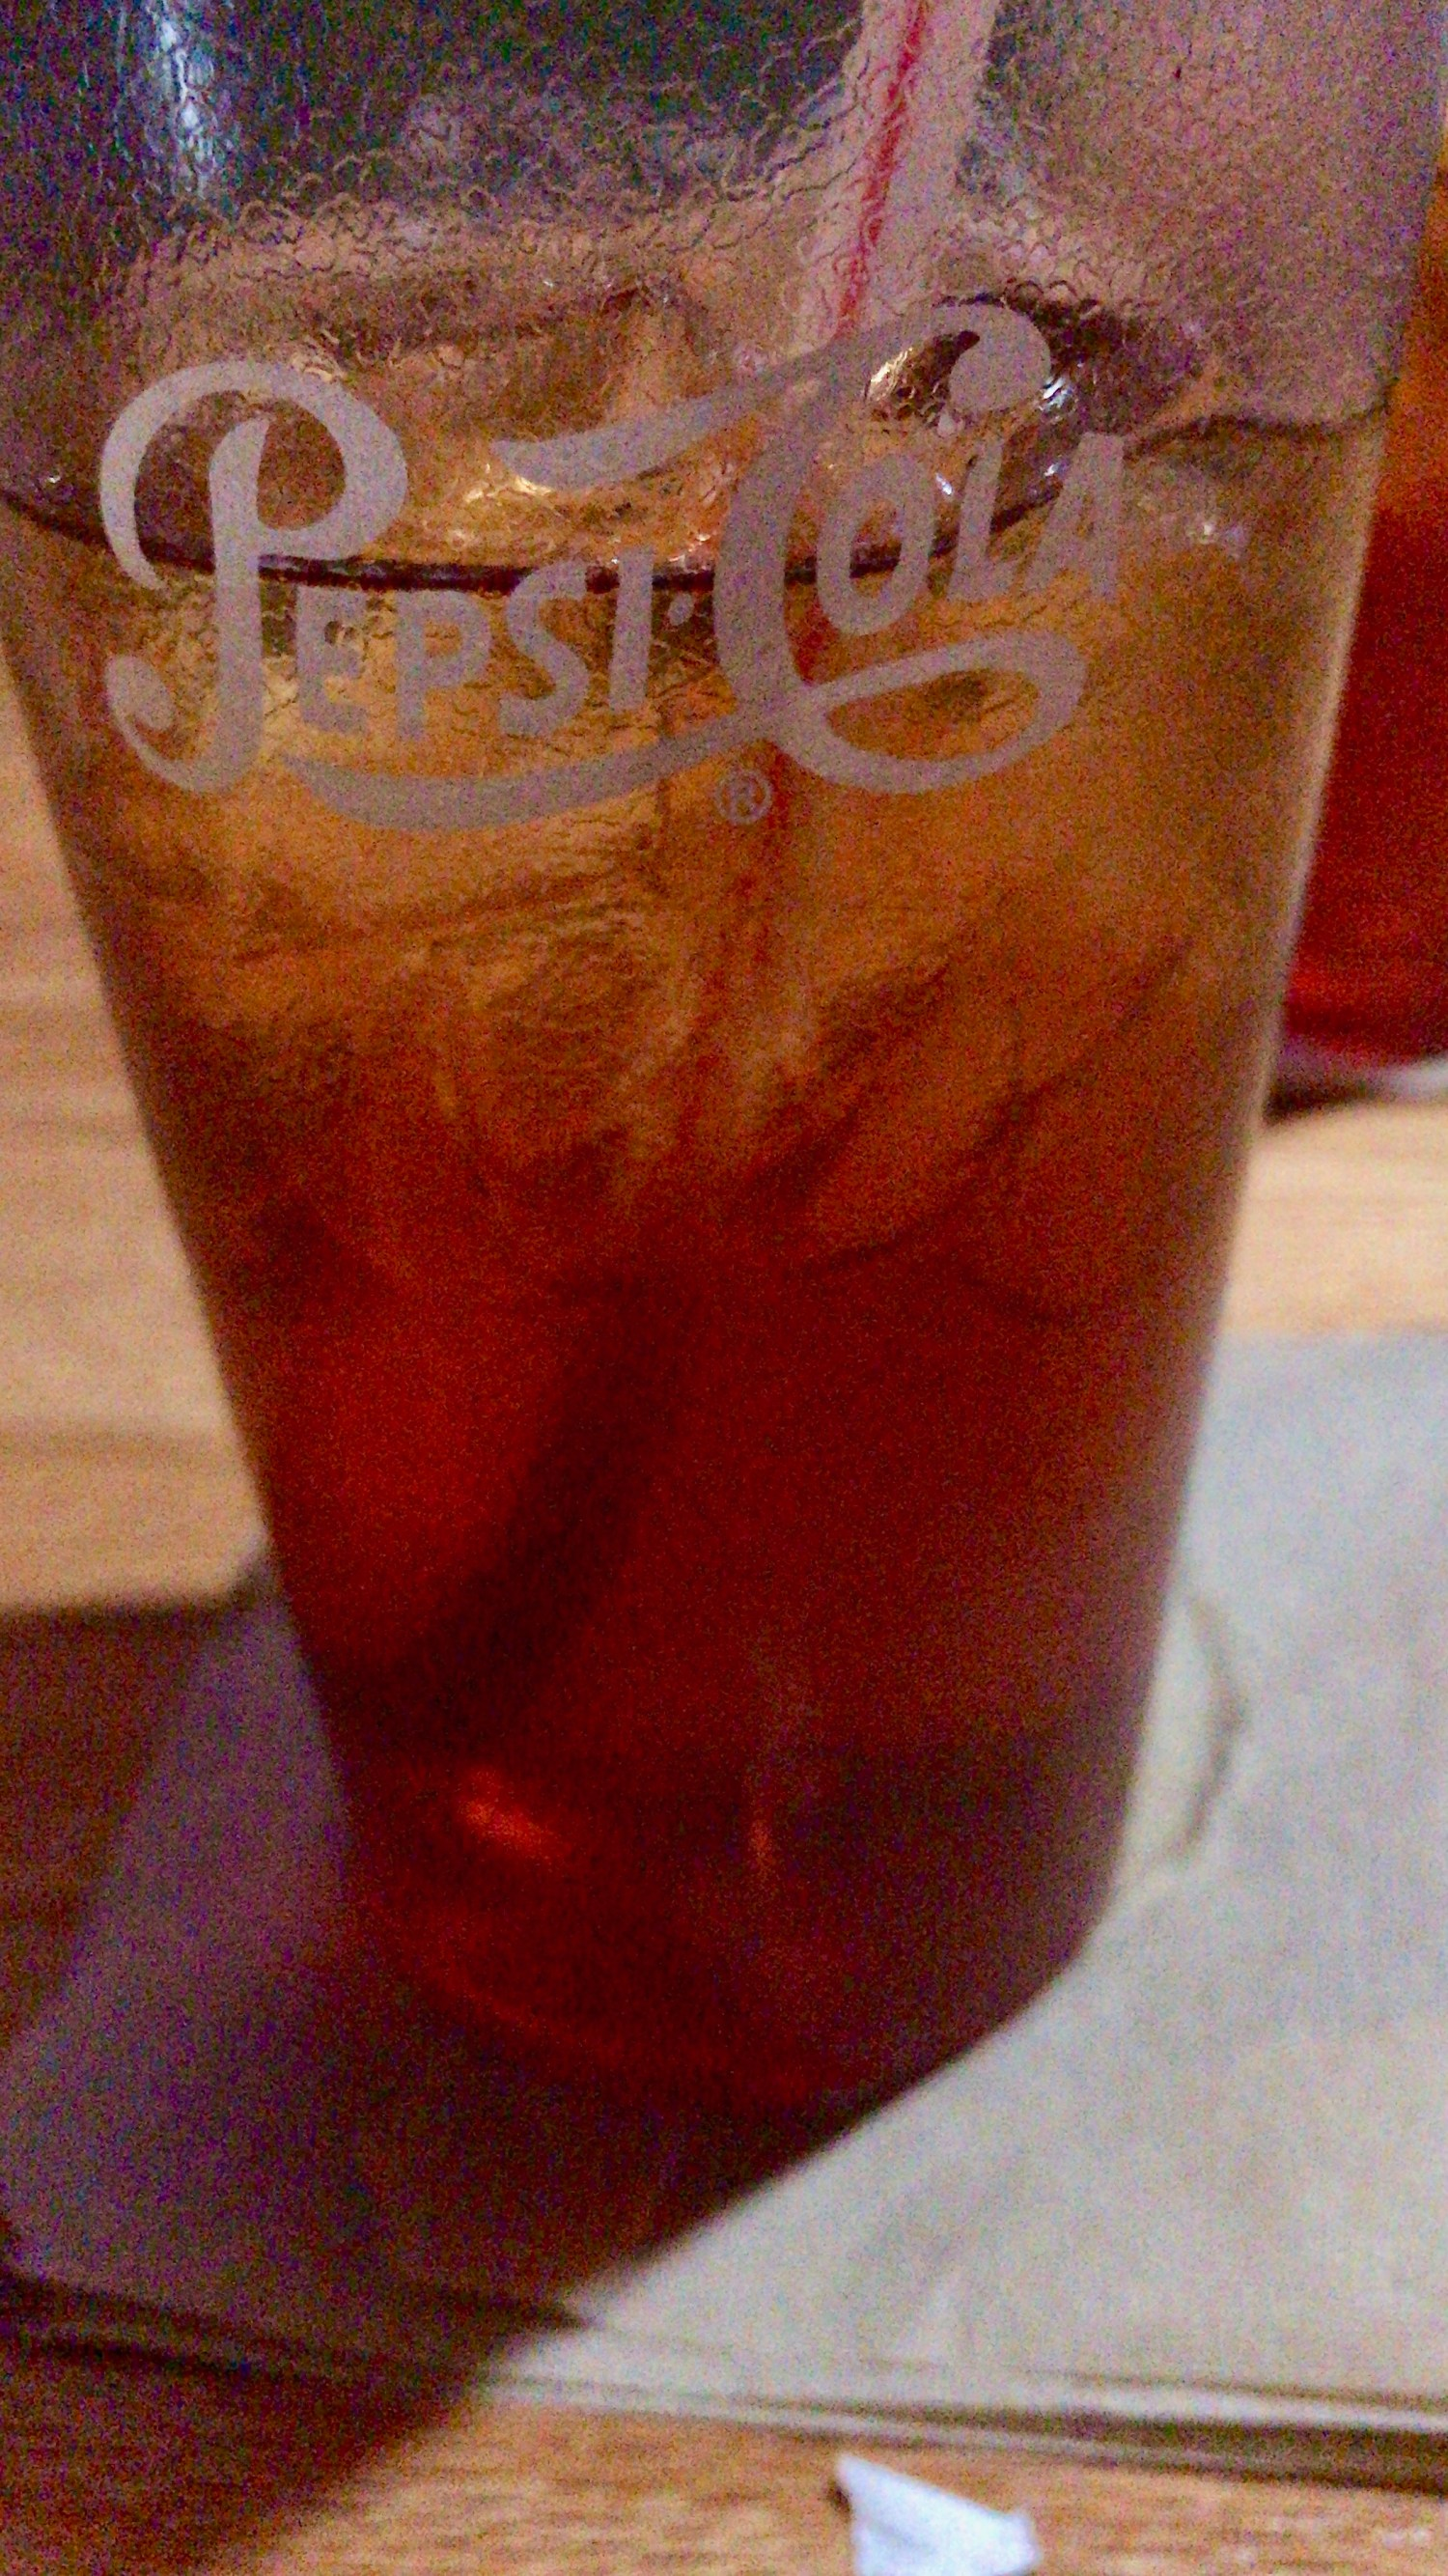 Applebee's Sweet Tea